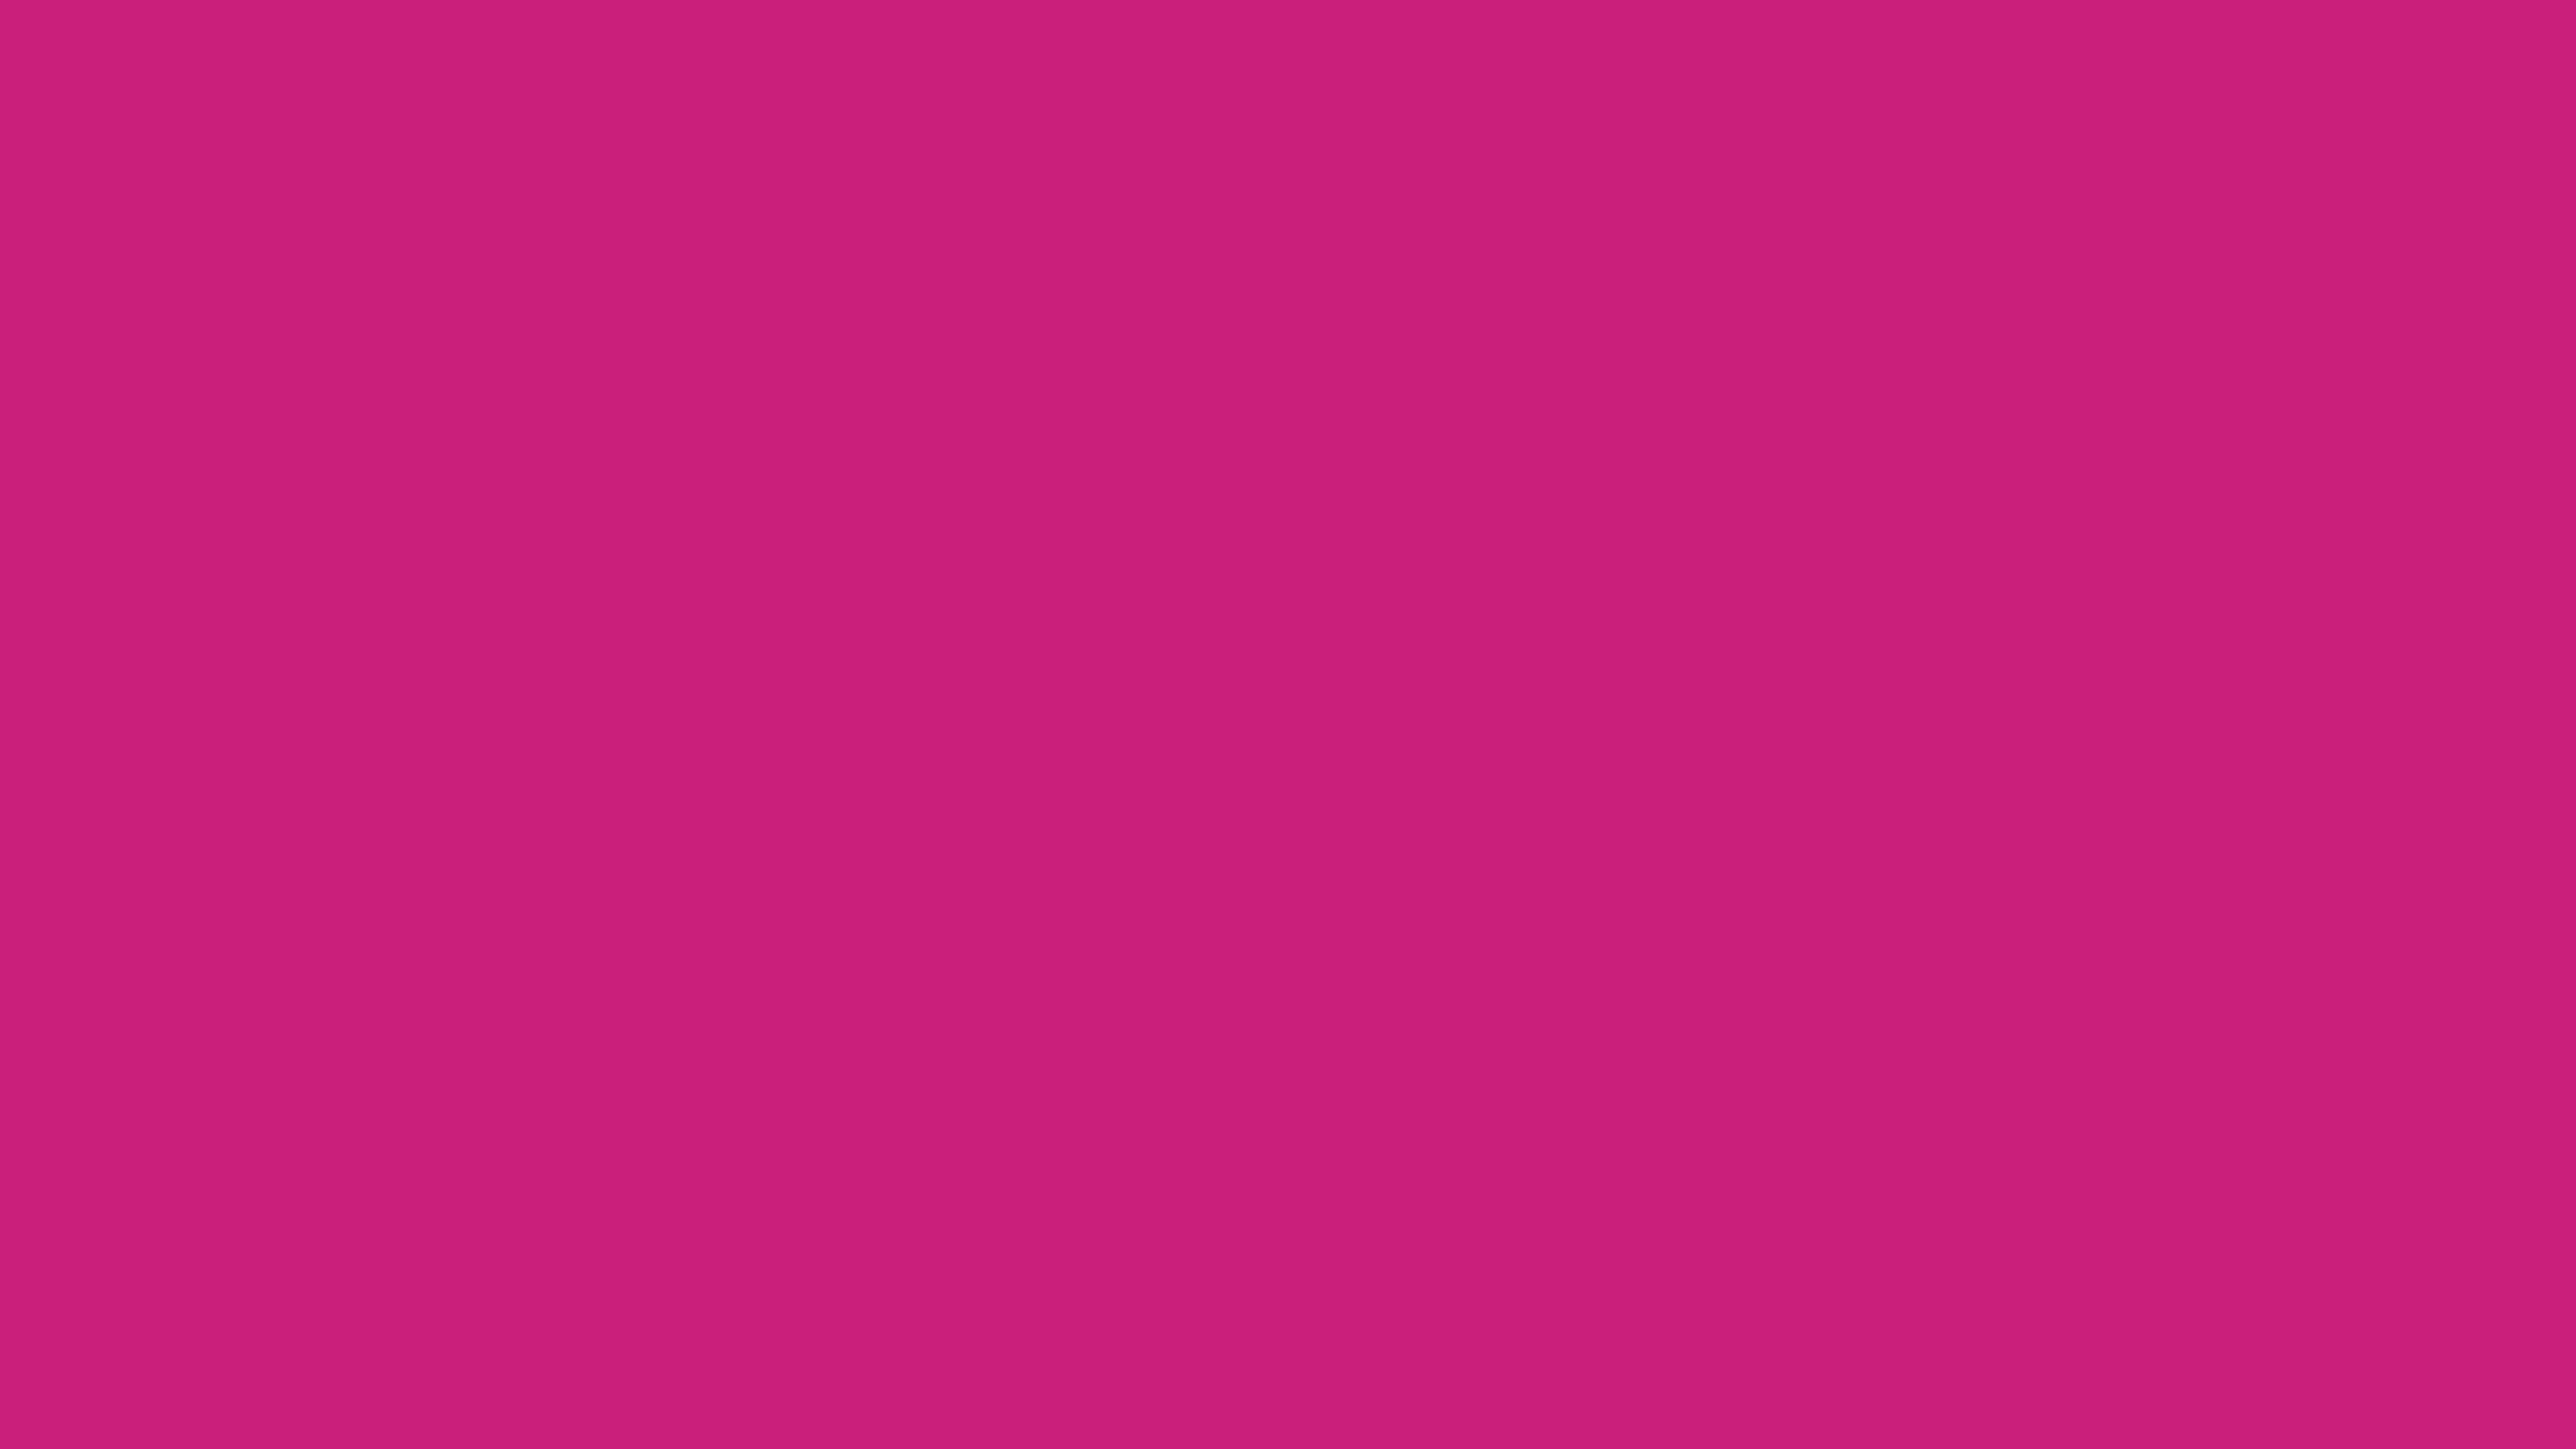 5120x2880 Magenta Dye Solid Color Background